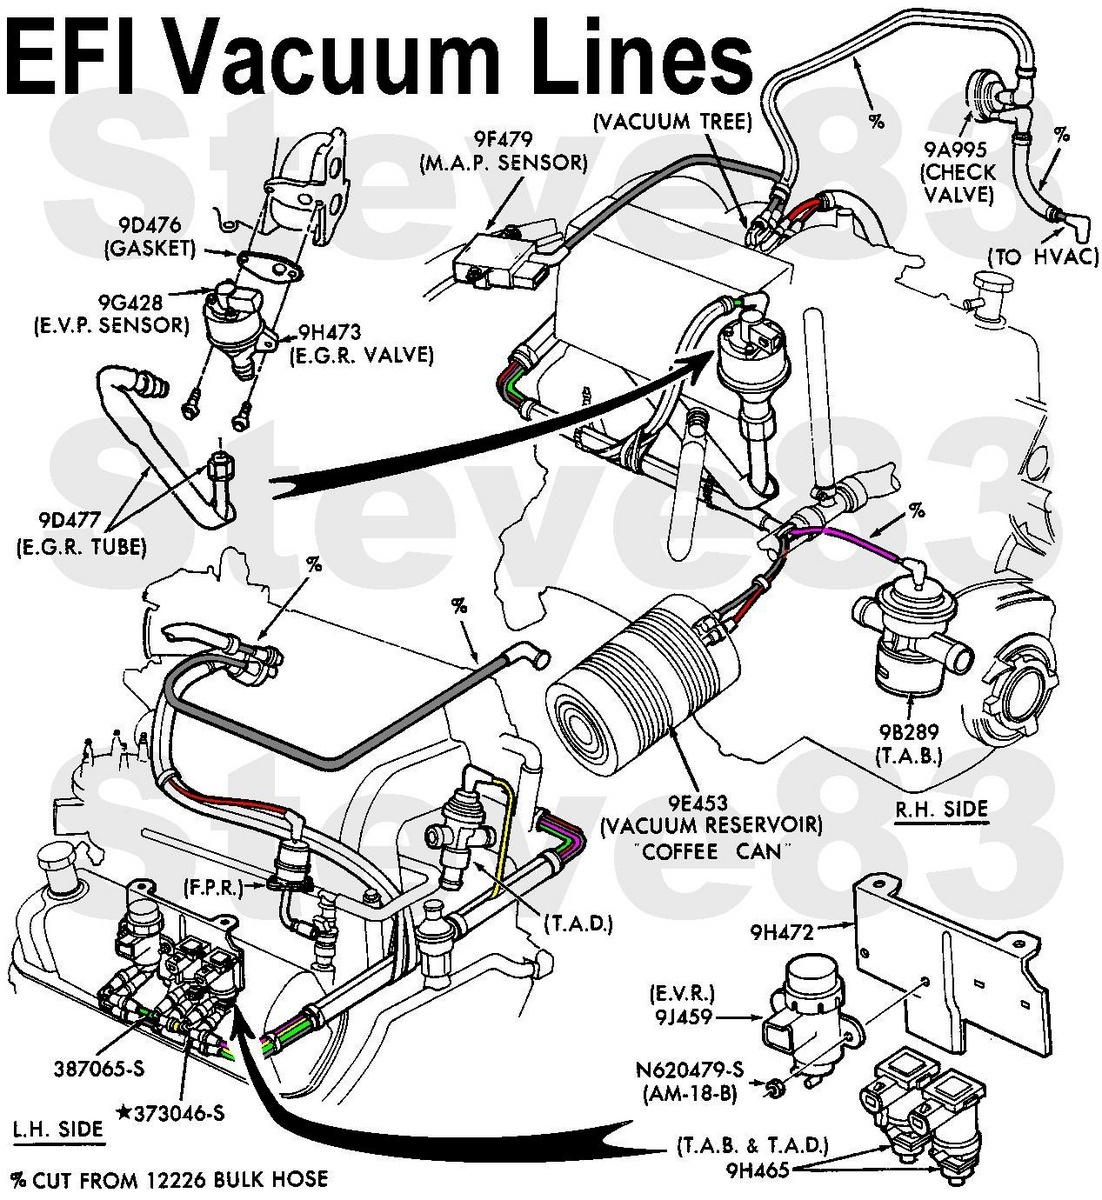 hight resolution of ford f 150 questions is there a diagram for vacuum hoses on 1990 2001 f150 5 4 engine diagram 91 f150 engine diagram